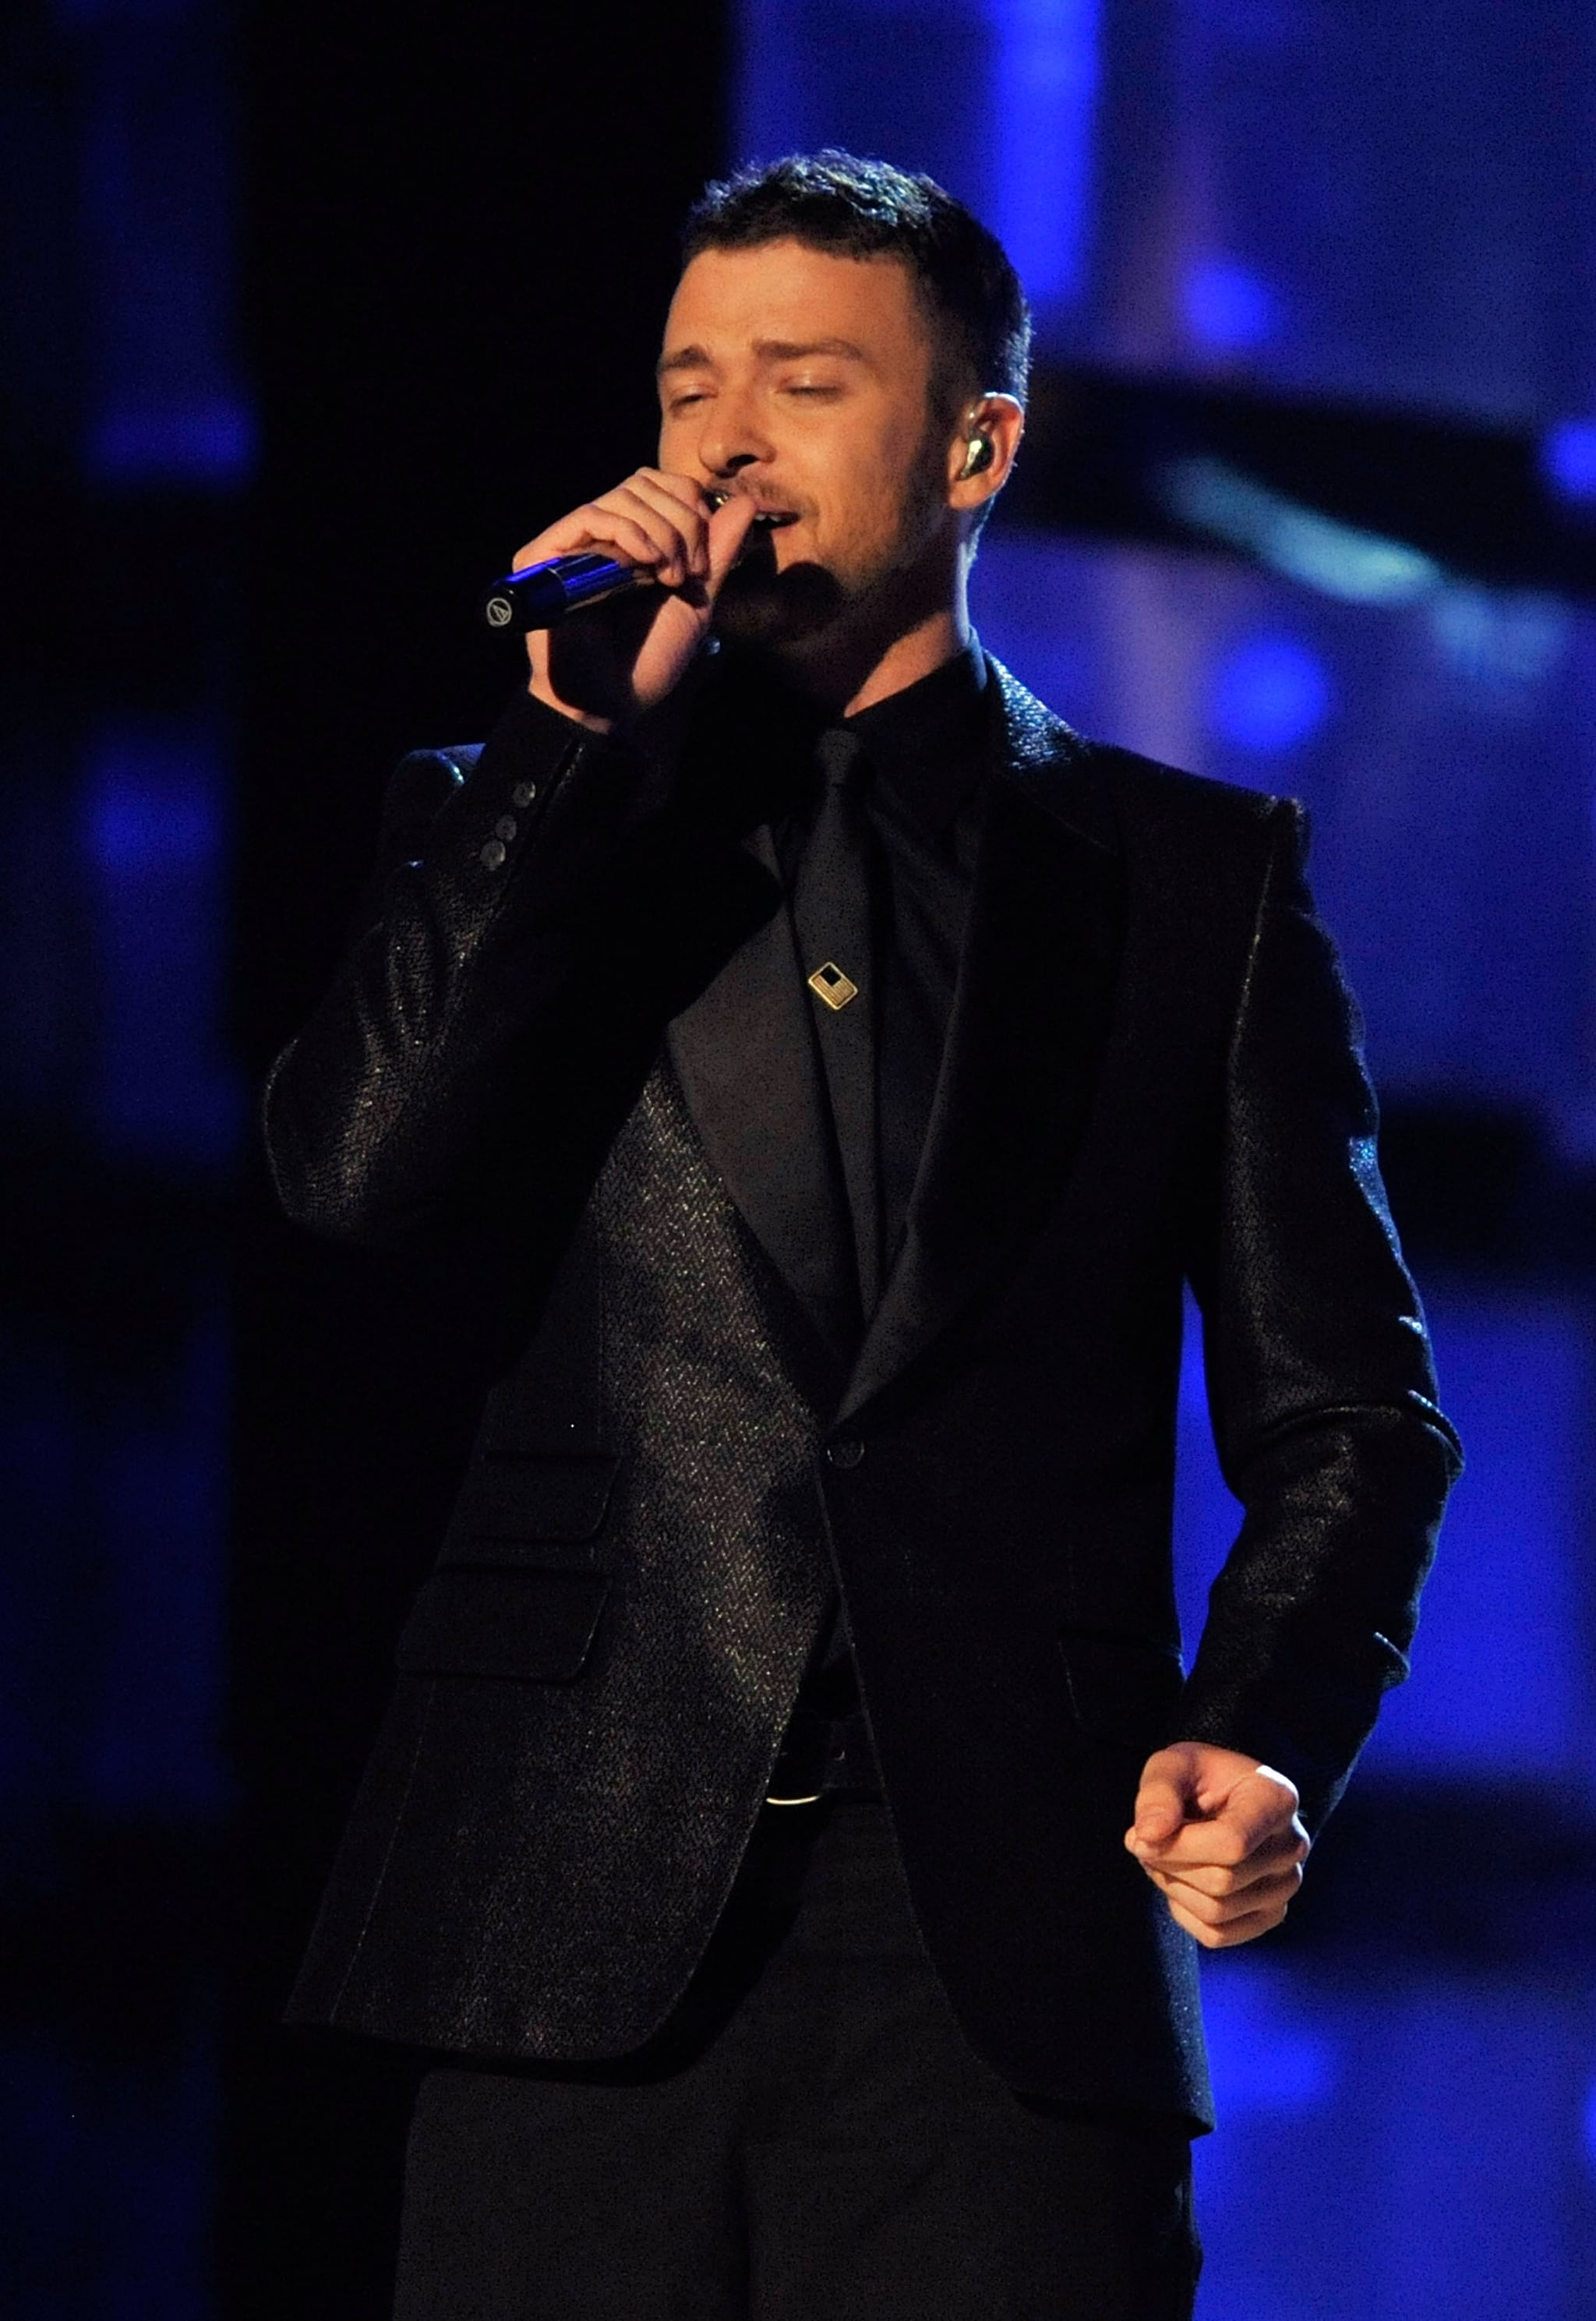 Justin looked soulful (and sexy) in an all-black suited look at the Grammys in 2009.